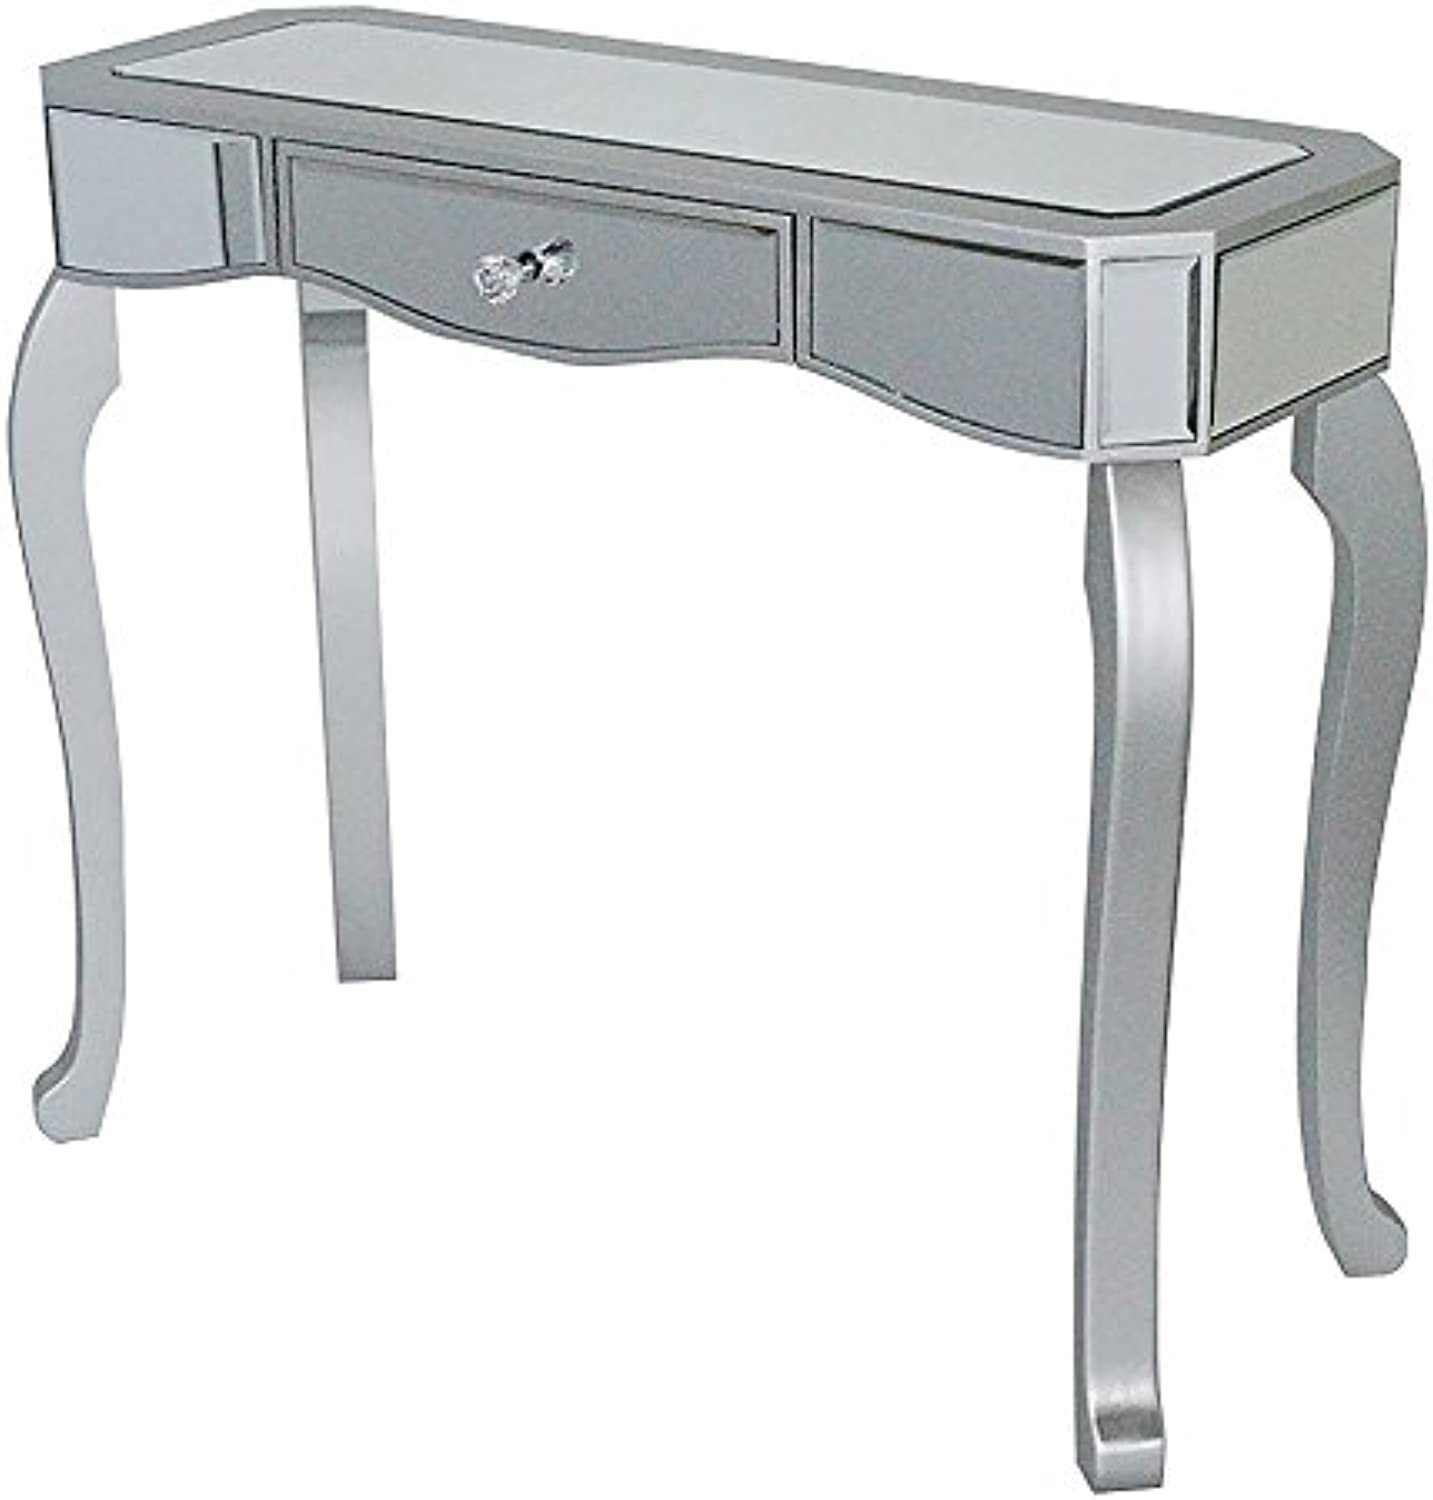 Heather Ann Creations W192154-SILV 30.7  Katrina Collection Console Living Room Office Writing Table with Drawer and Mirror Accents, Silver